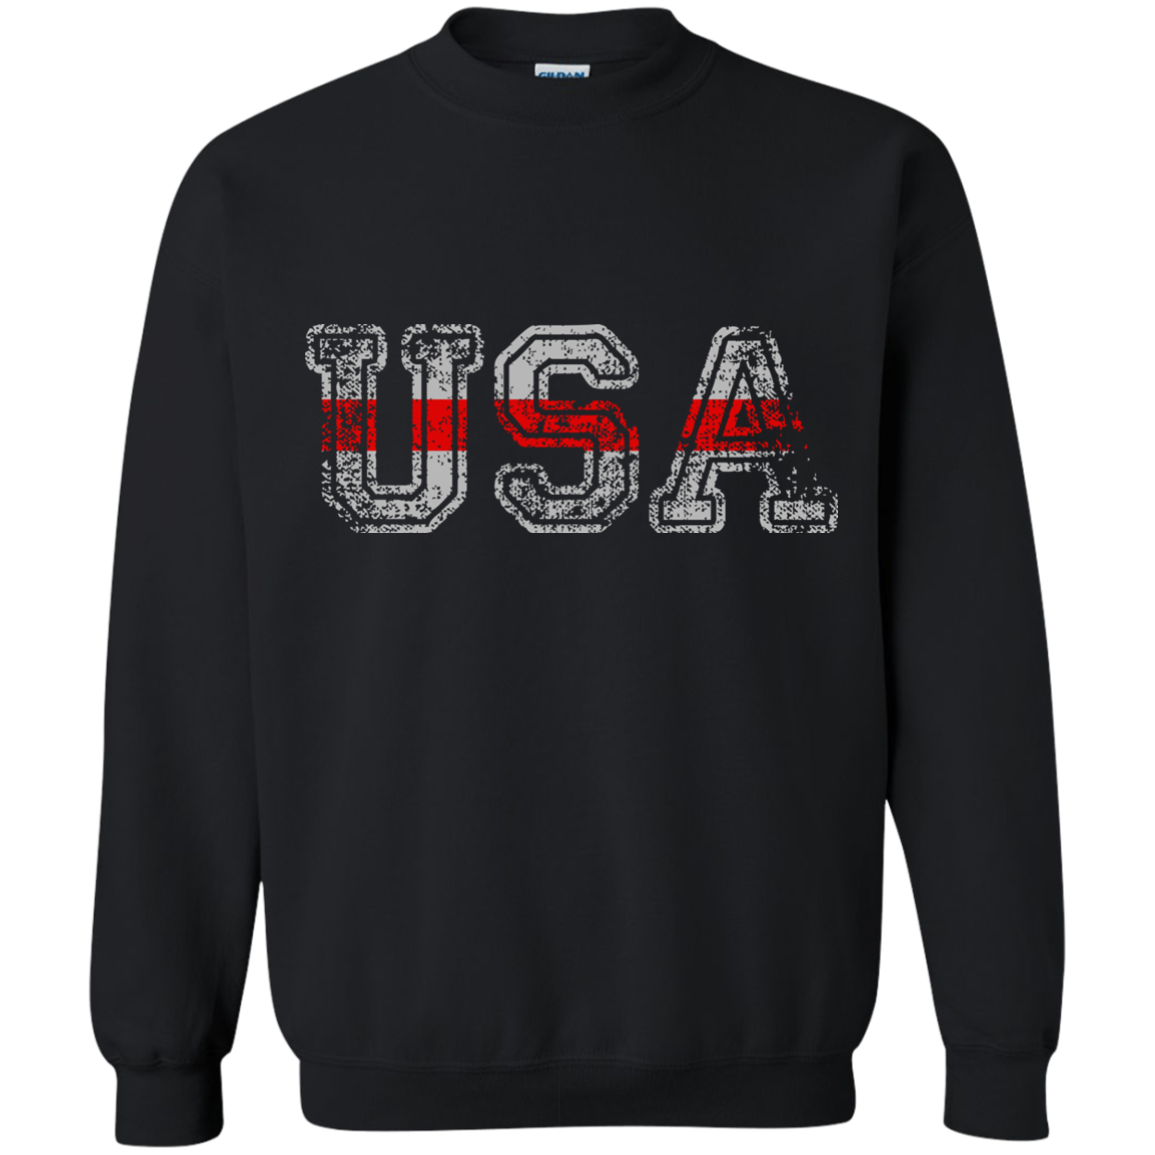 USA, The Strong - Sweaters